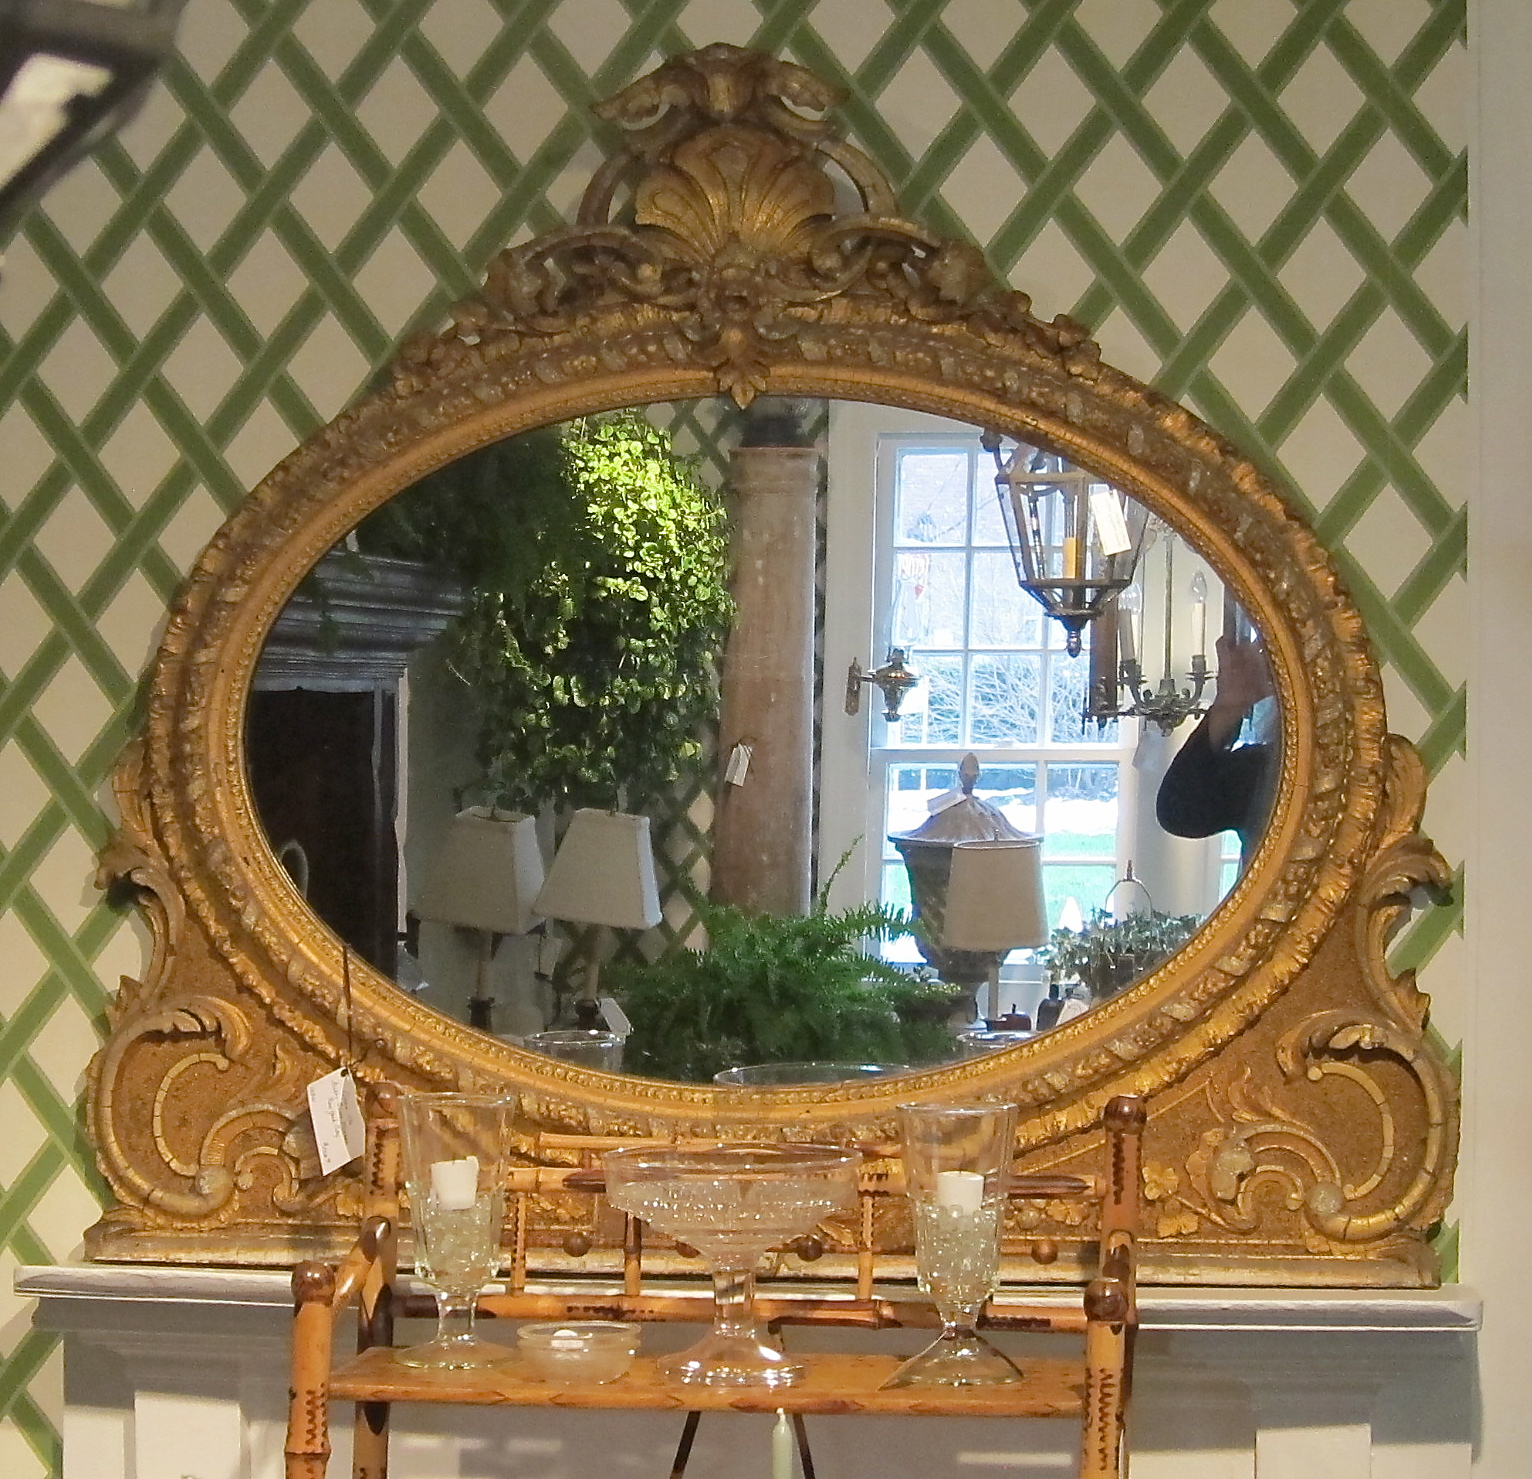 Antique Mirror at Bertolini & Co. in Warwick, NY